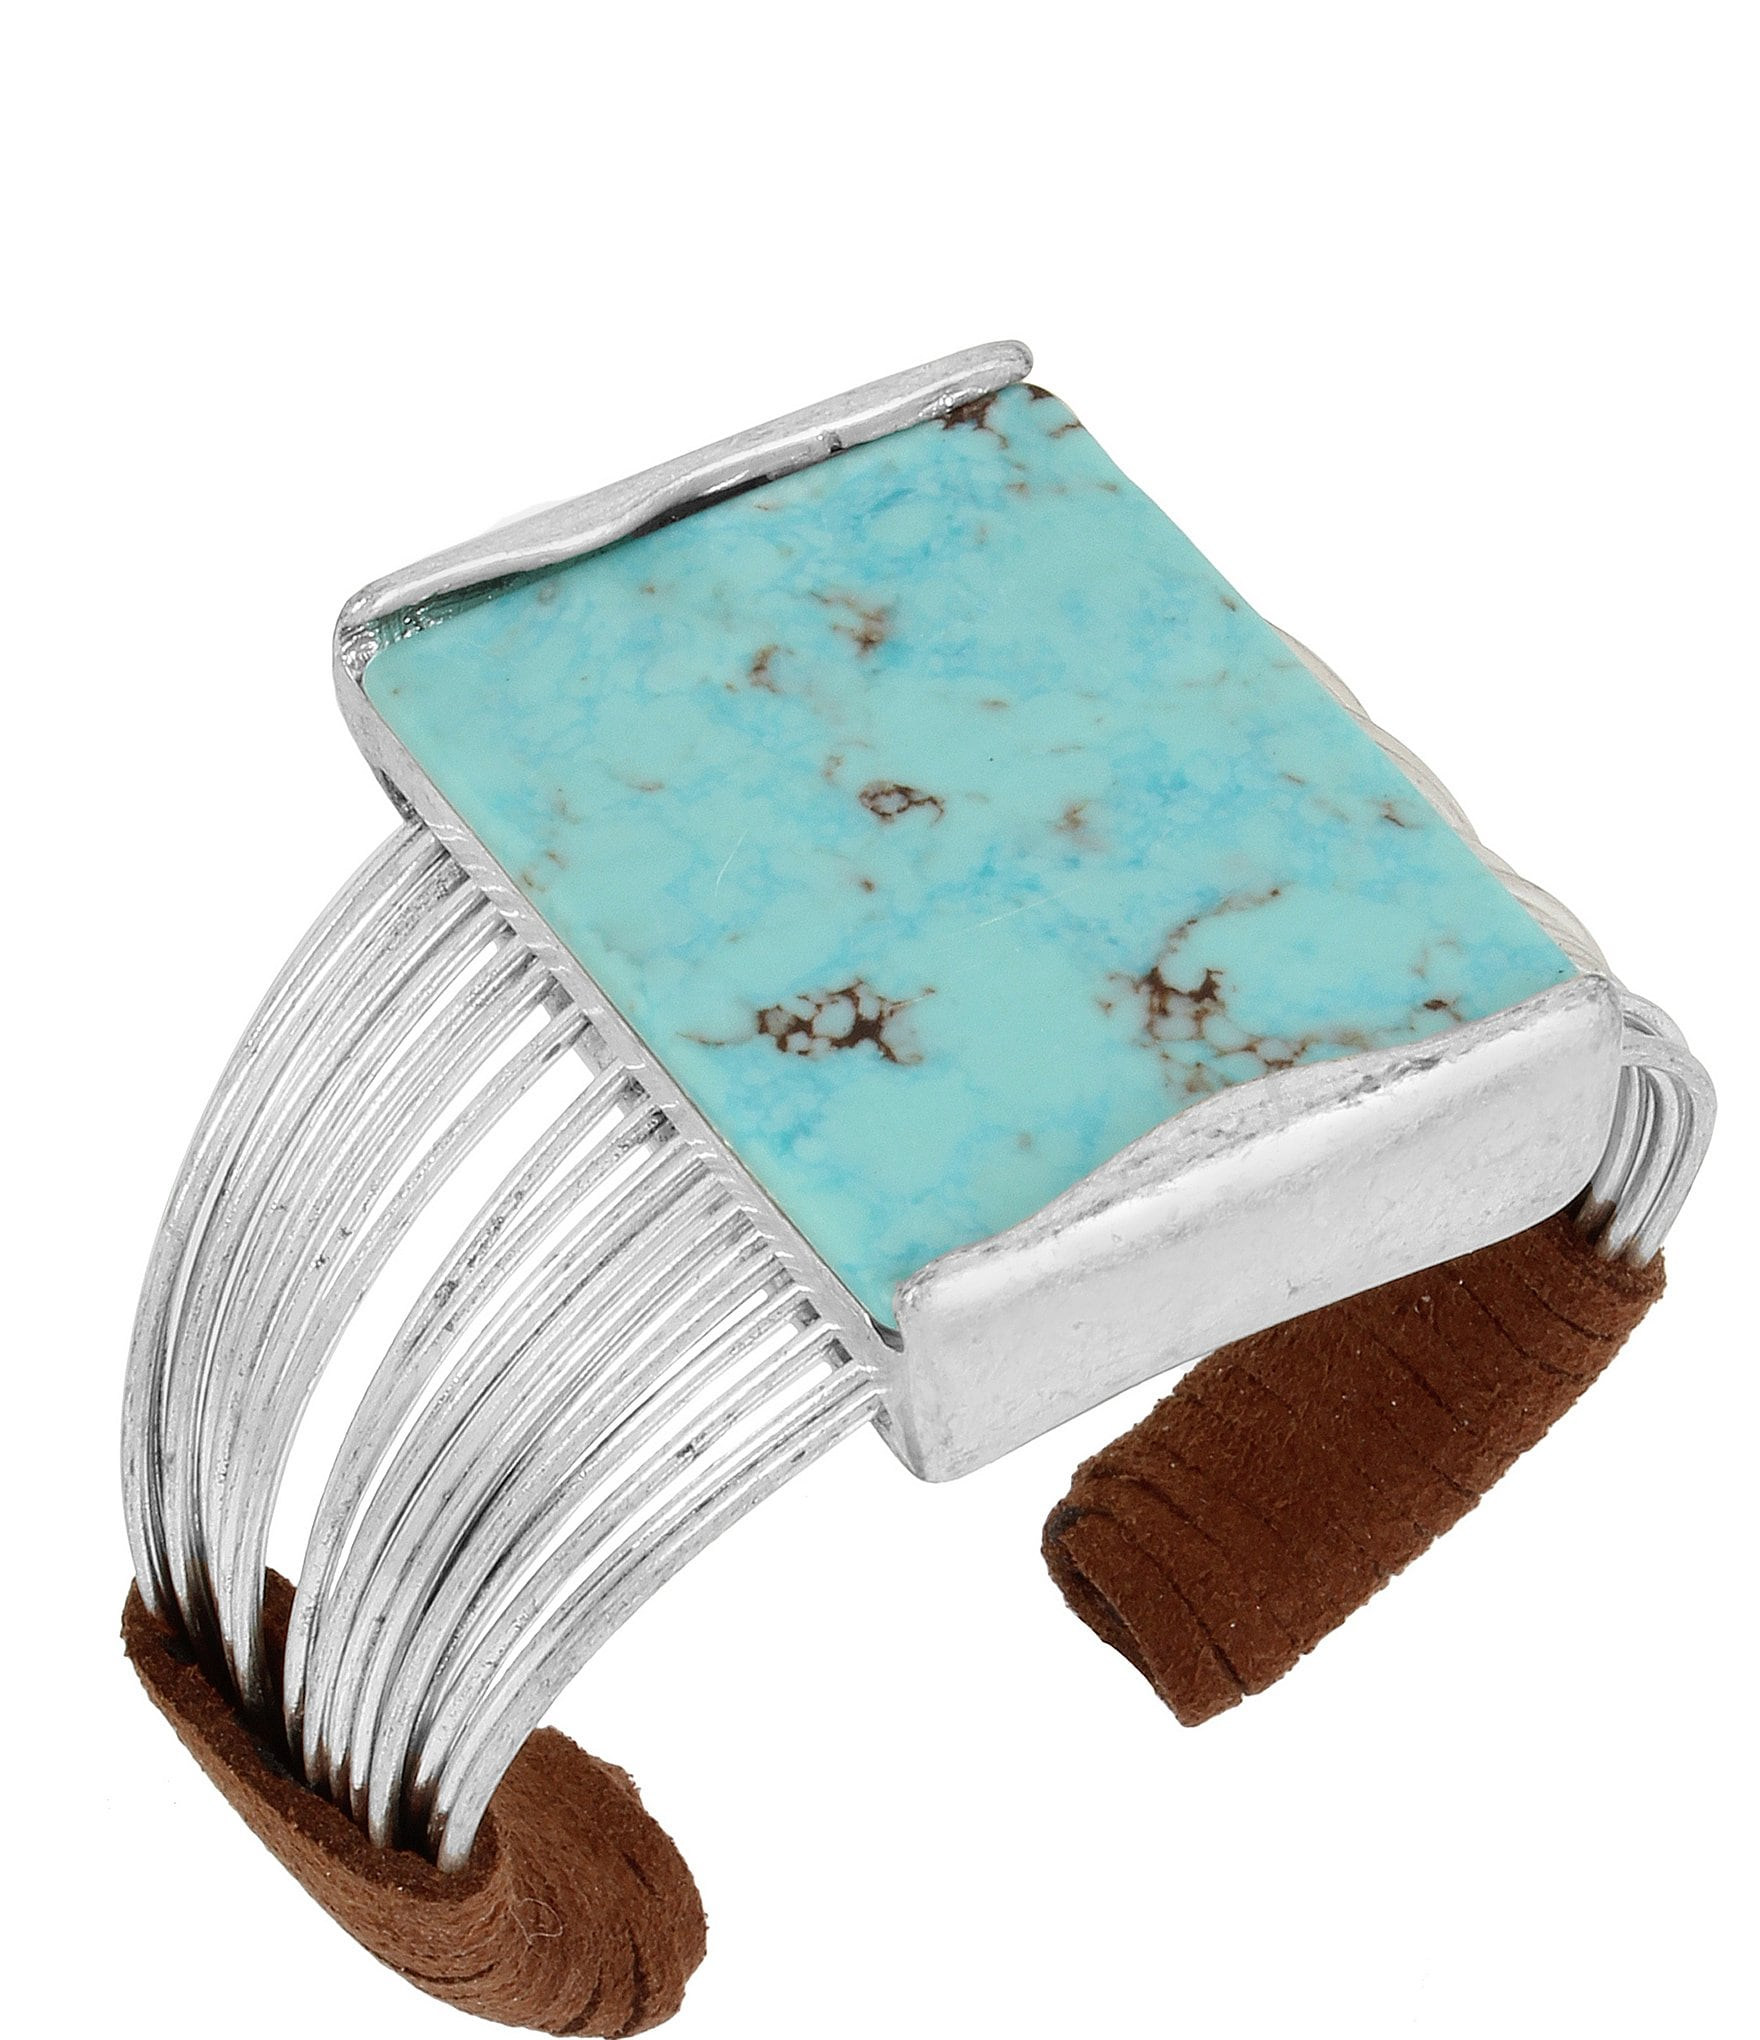 Turquoise &Amp; Suede Multi Row Cuff Bracelet by Robert Lee Morris Soho